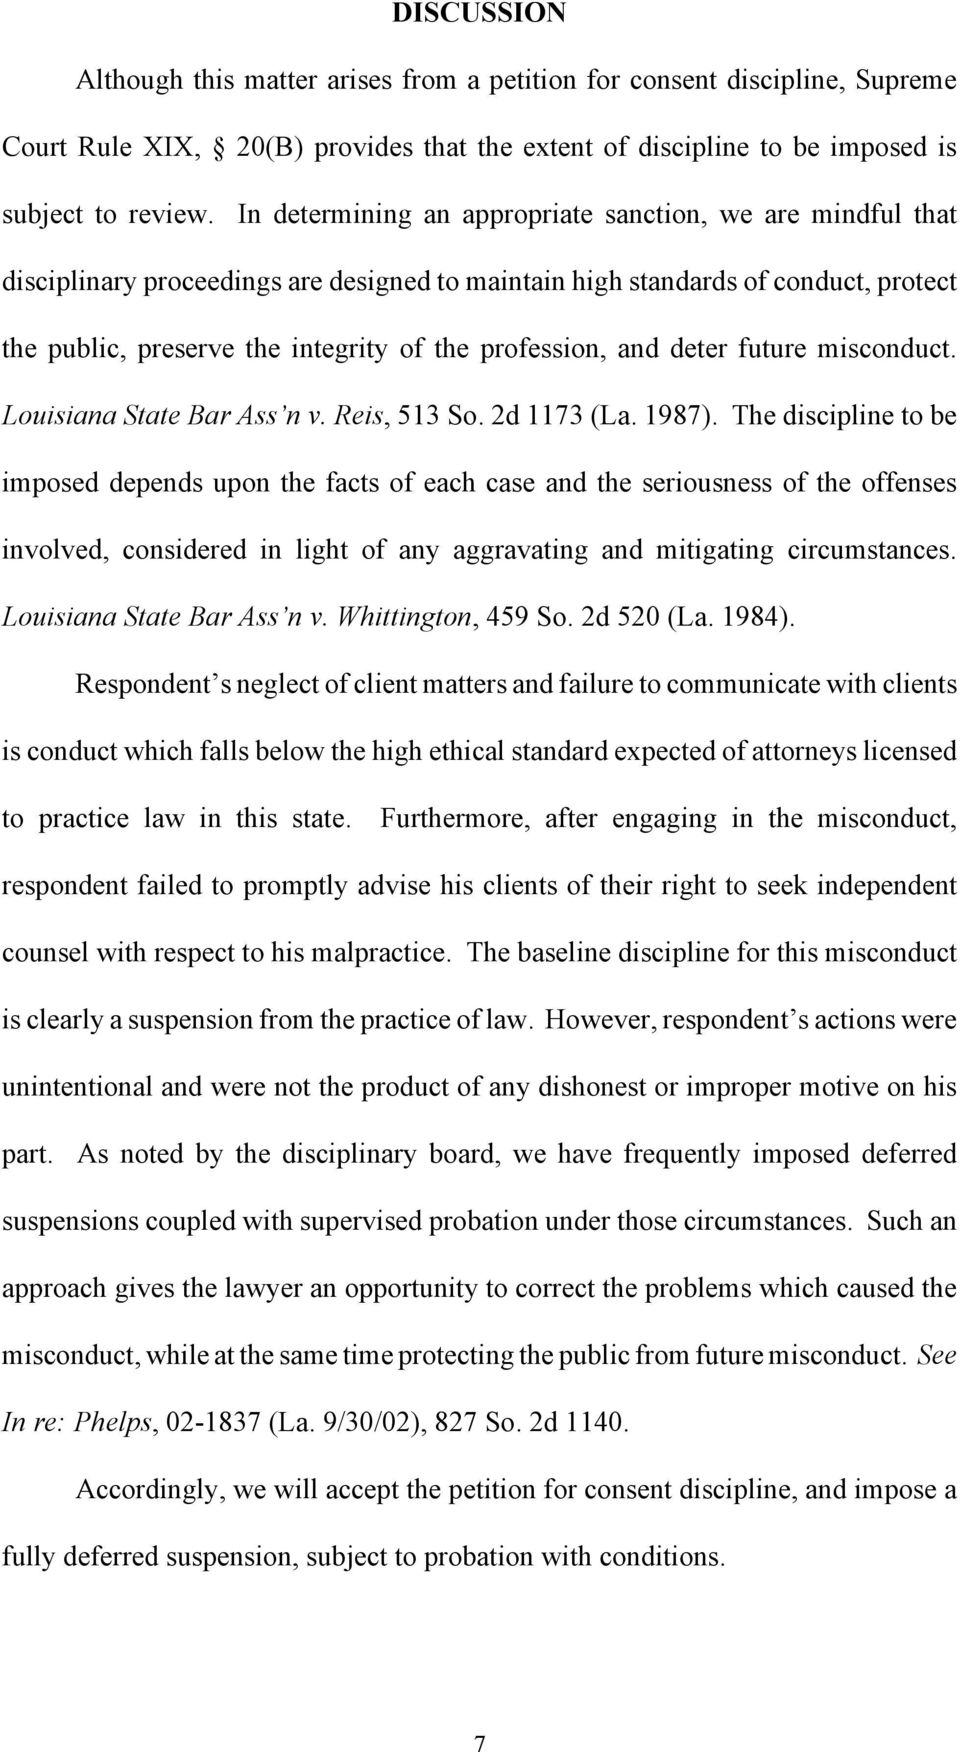 and deter future misconduct. Louisiana State Bar Ass n v. Reis, 513 So. 2d 1173 (La. 1987).